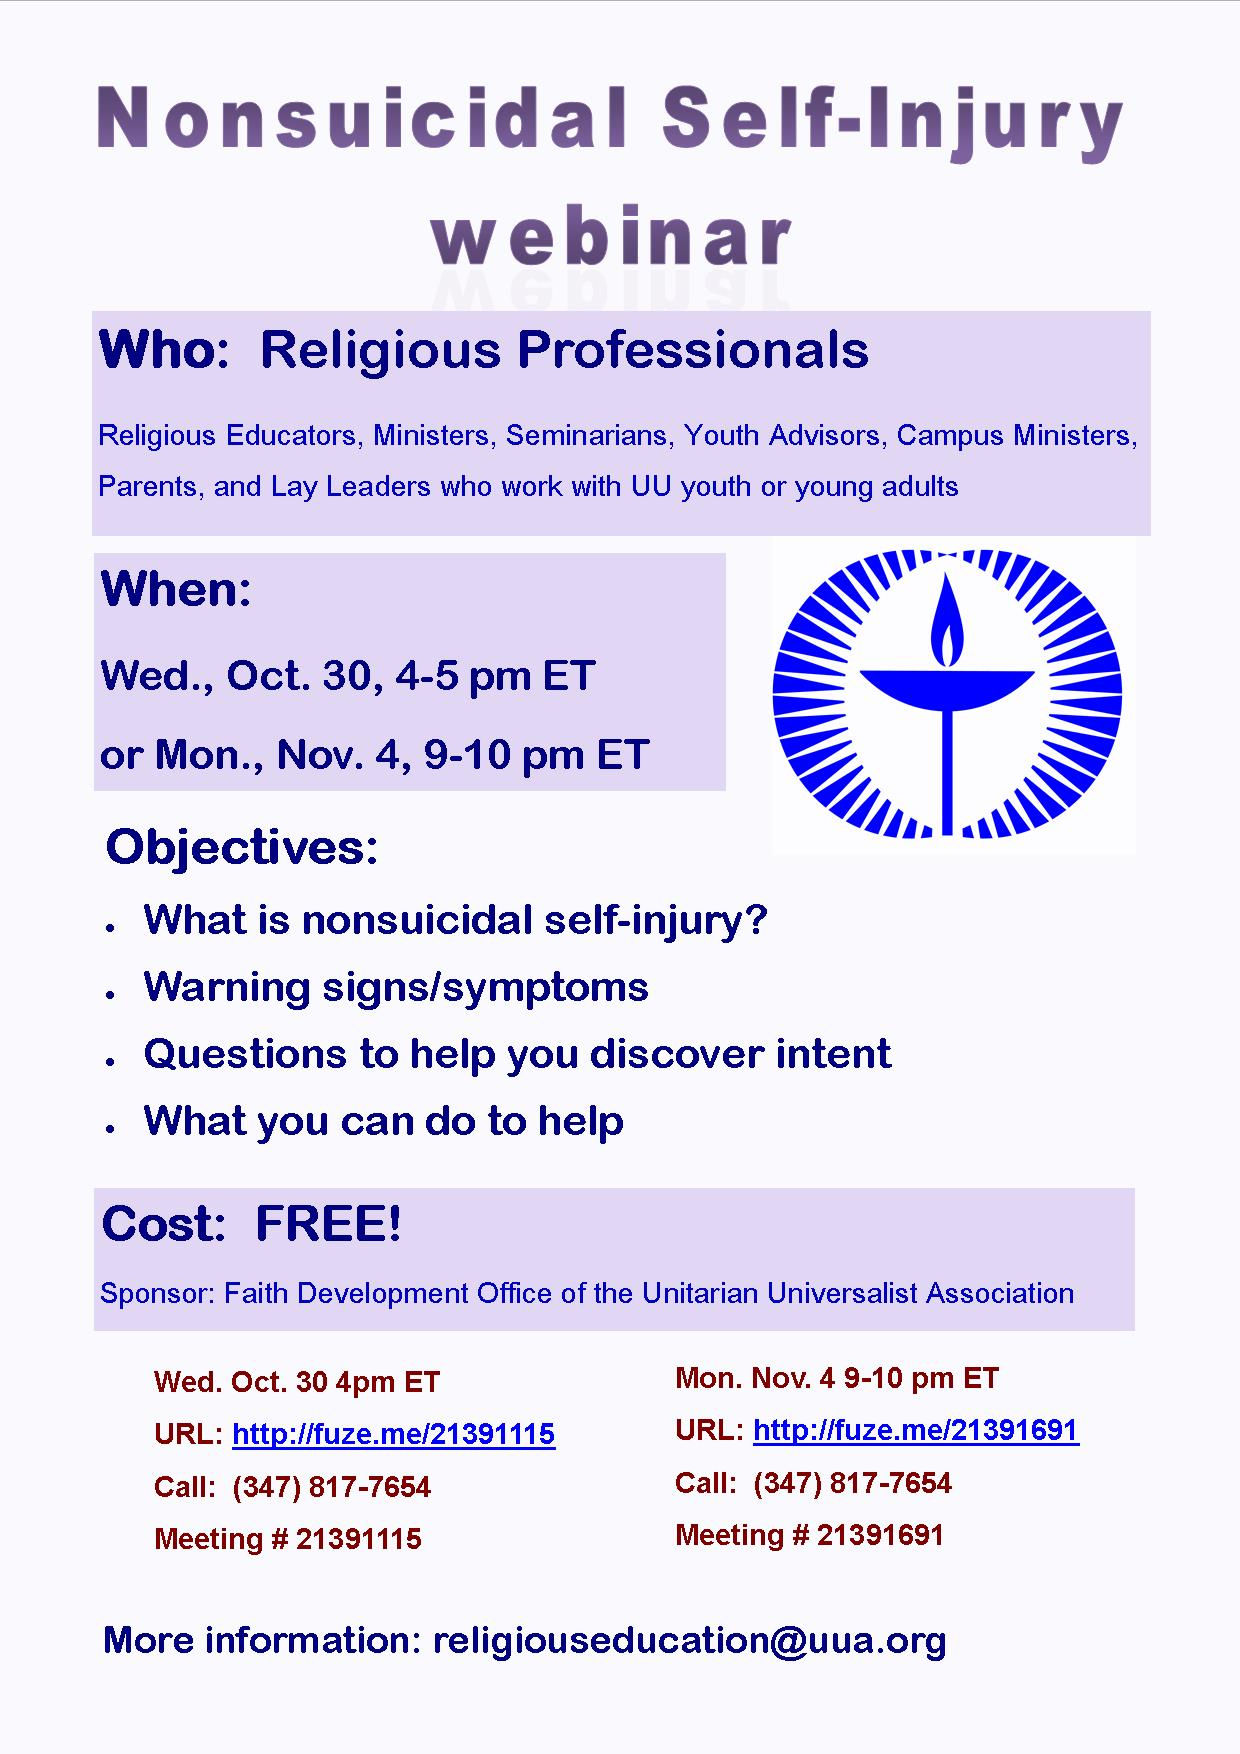 Nonsuicidal Self-Injruy webinar flyer